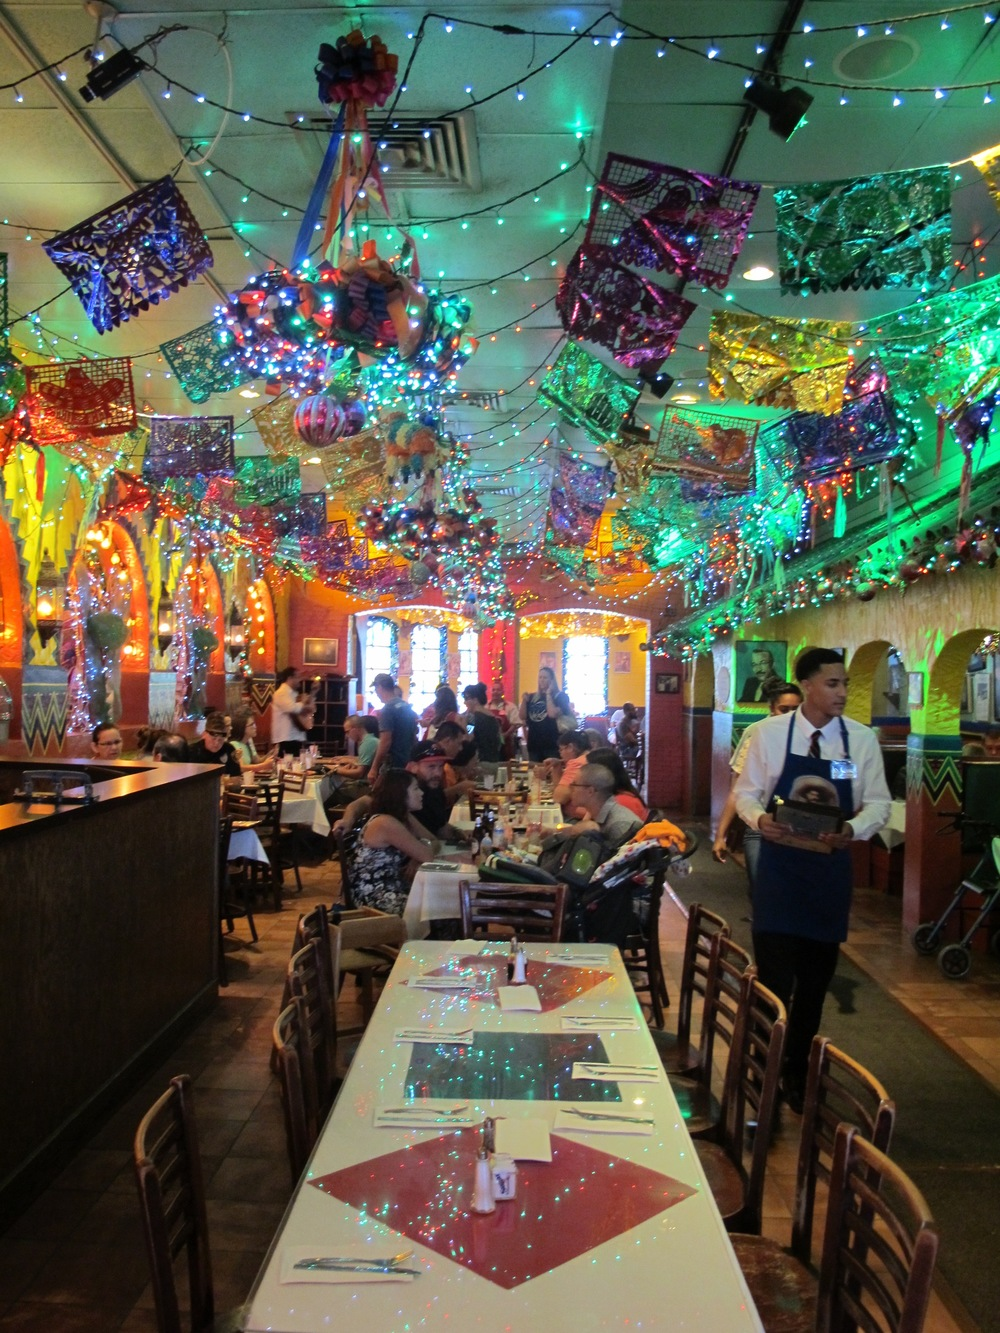 Mi Tierra Cafe and Bakery, Historic Market Square, San Antonio Texas